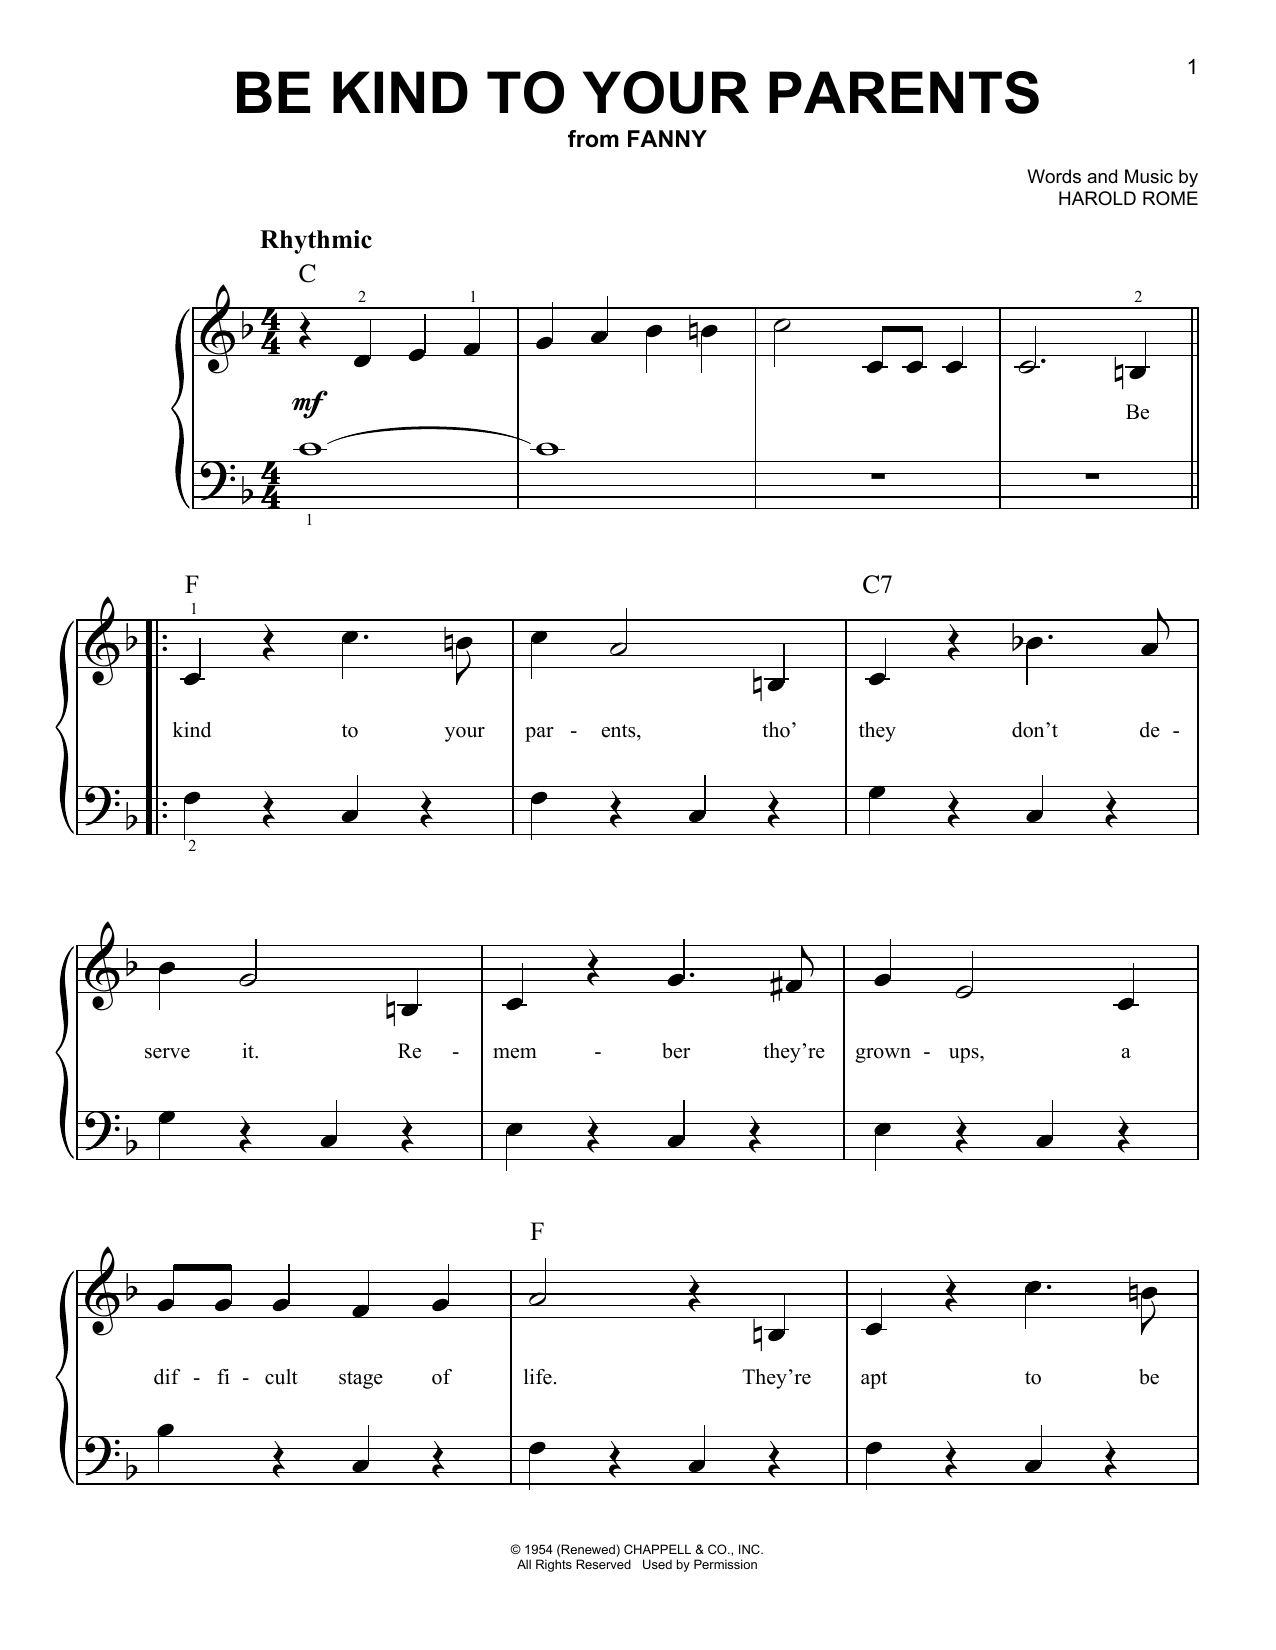 Harold Rome Be Kind To Your Parents sheet music notes and chords. Download Printable PDF.